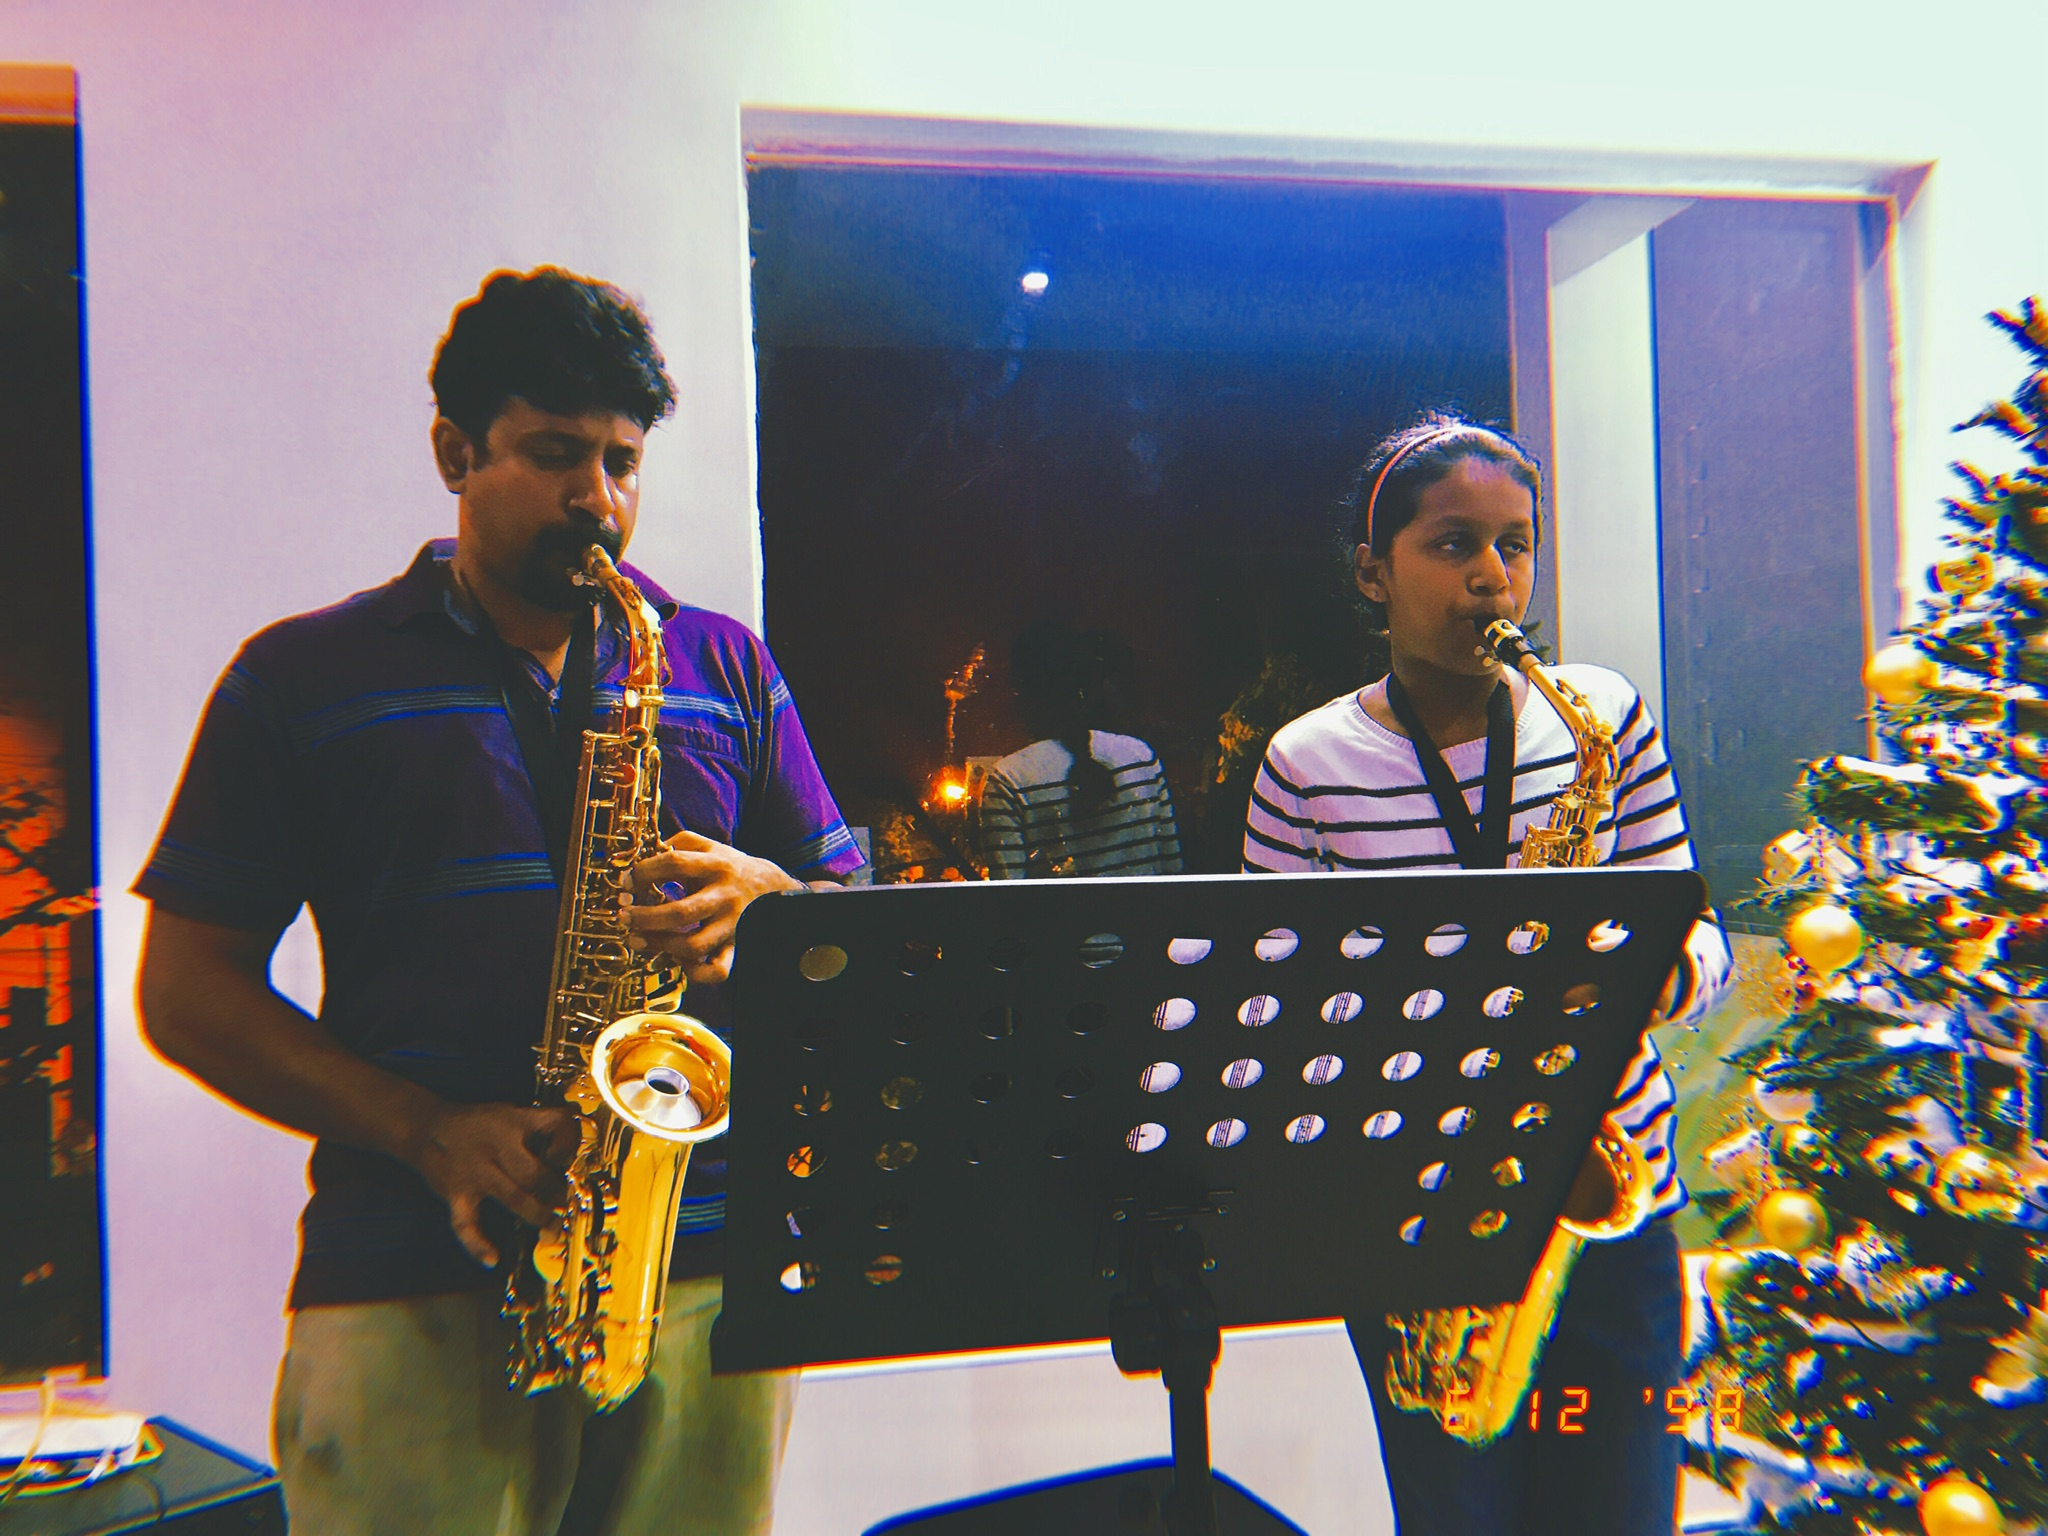 Narayan and Betsy on the Sax